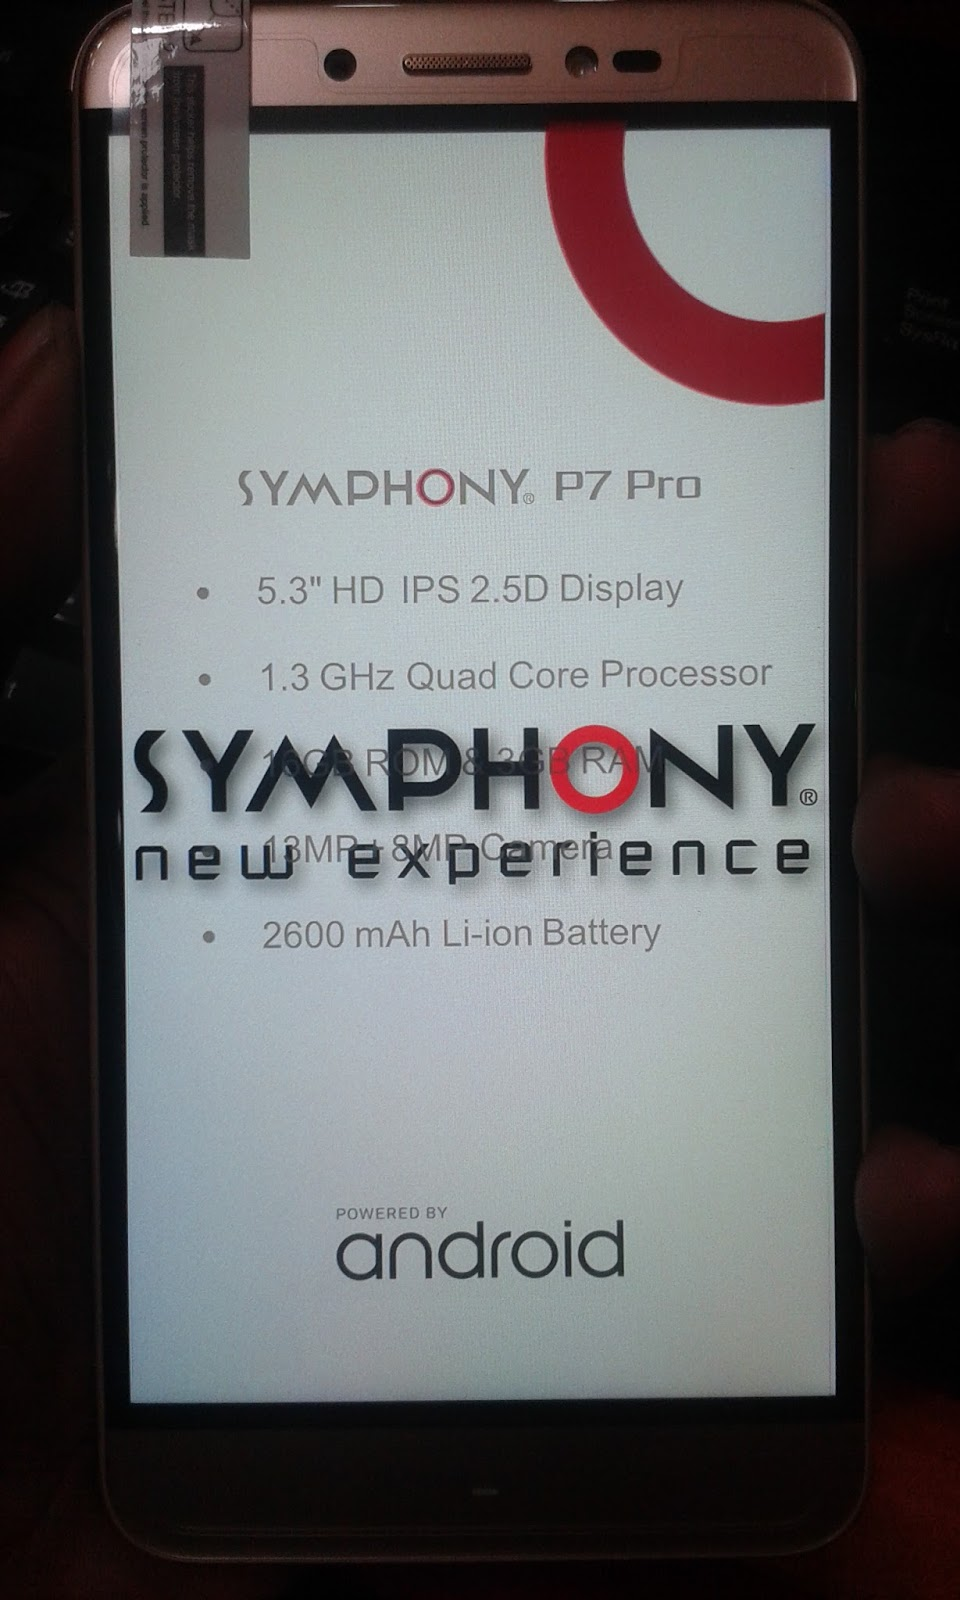 Image result for symphony p7 pro